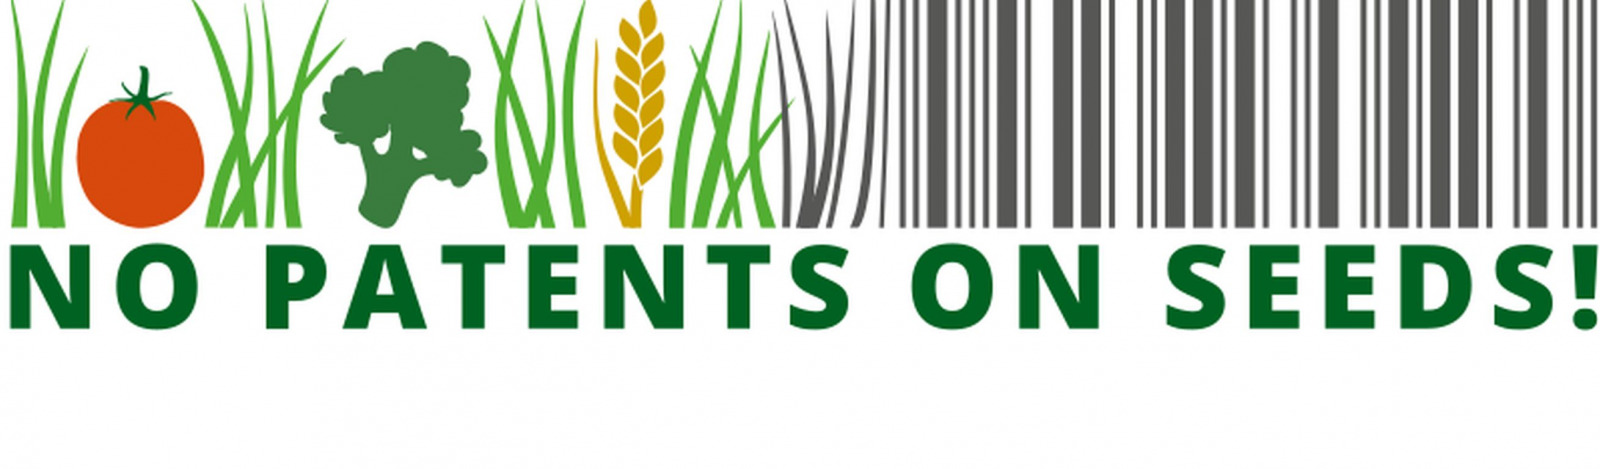 No Patents onSeeds Logo